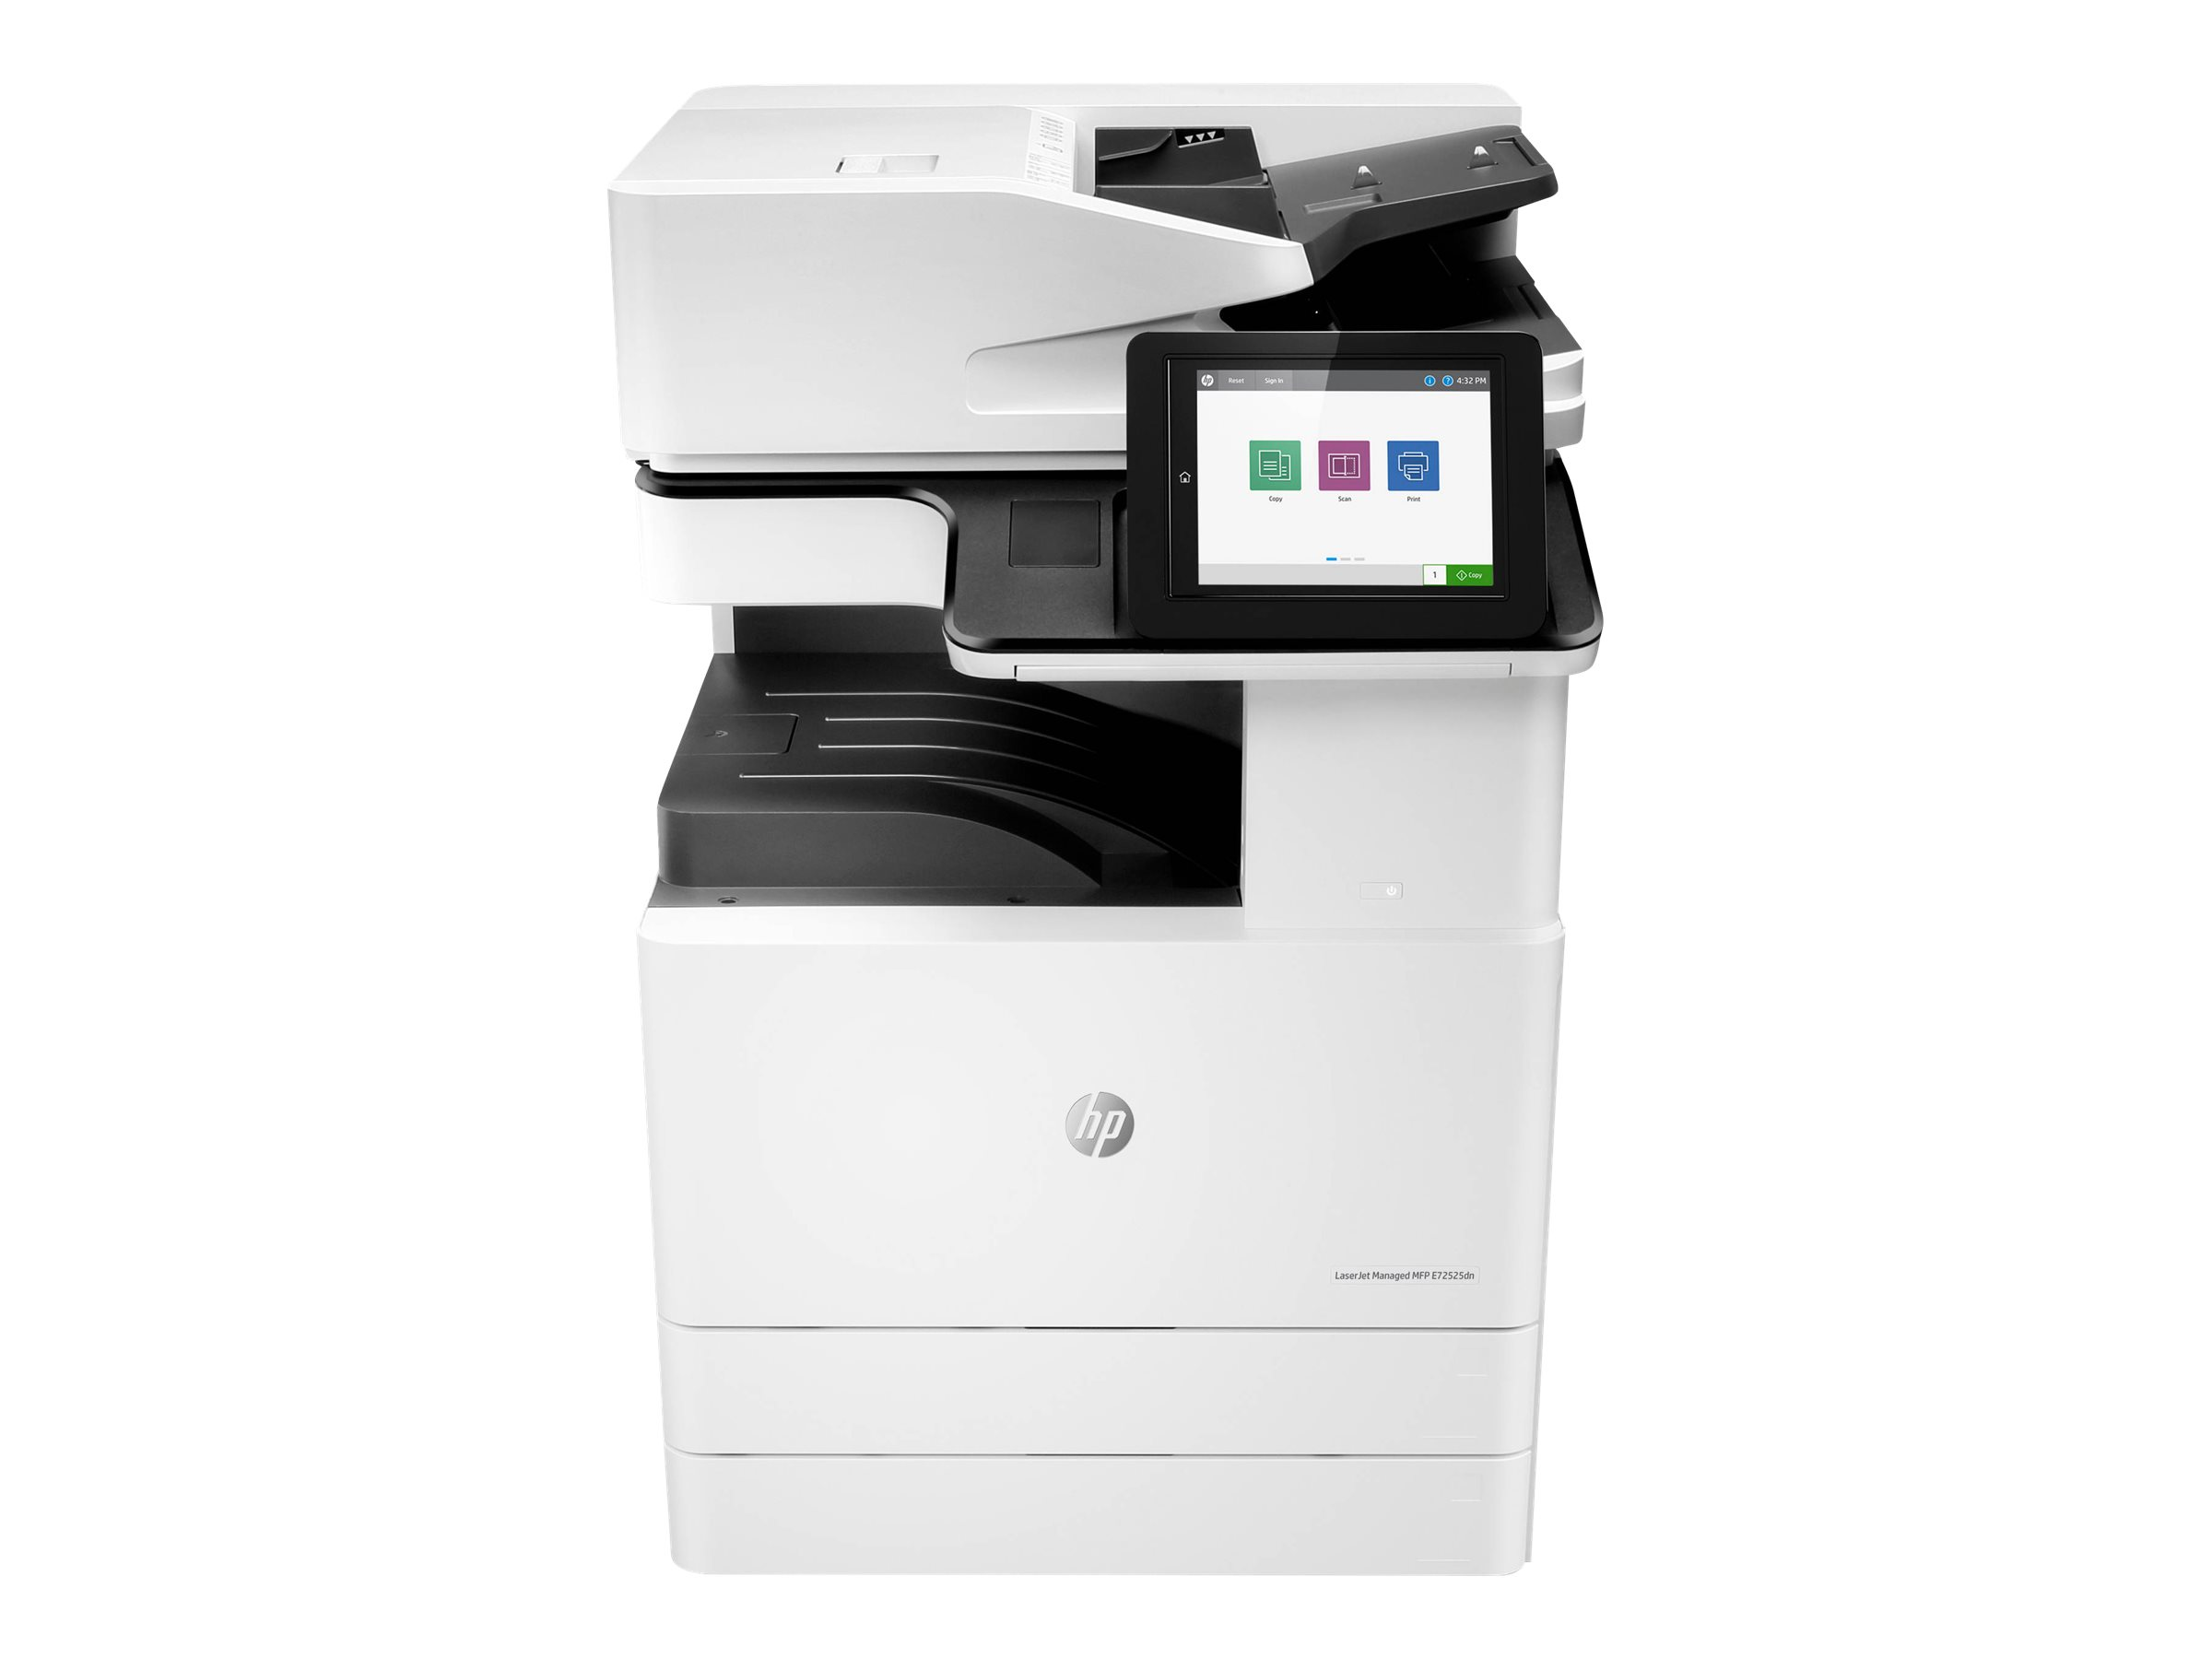 Copieur Color LaserJet Managed Flow MFP HP E77830z - vitesse 30ppm vue avant